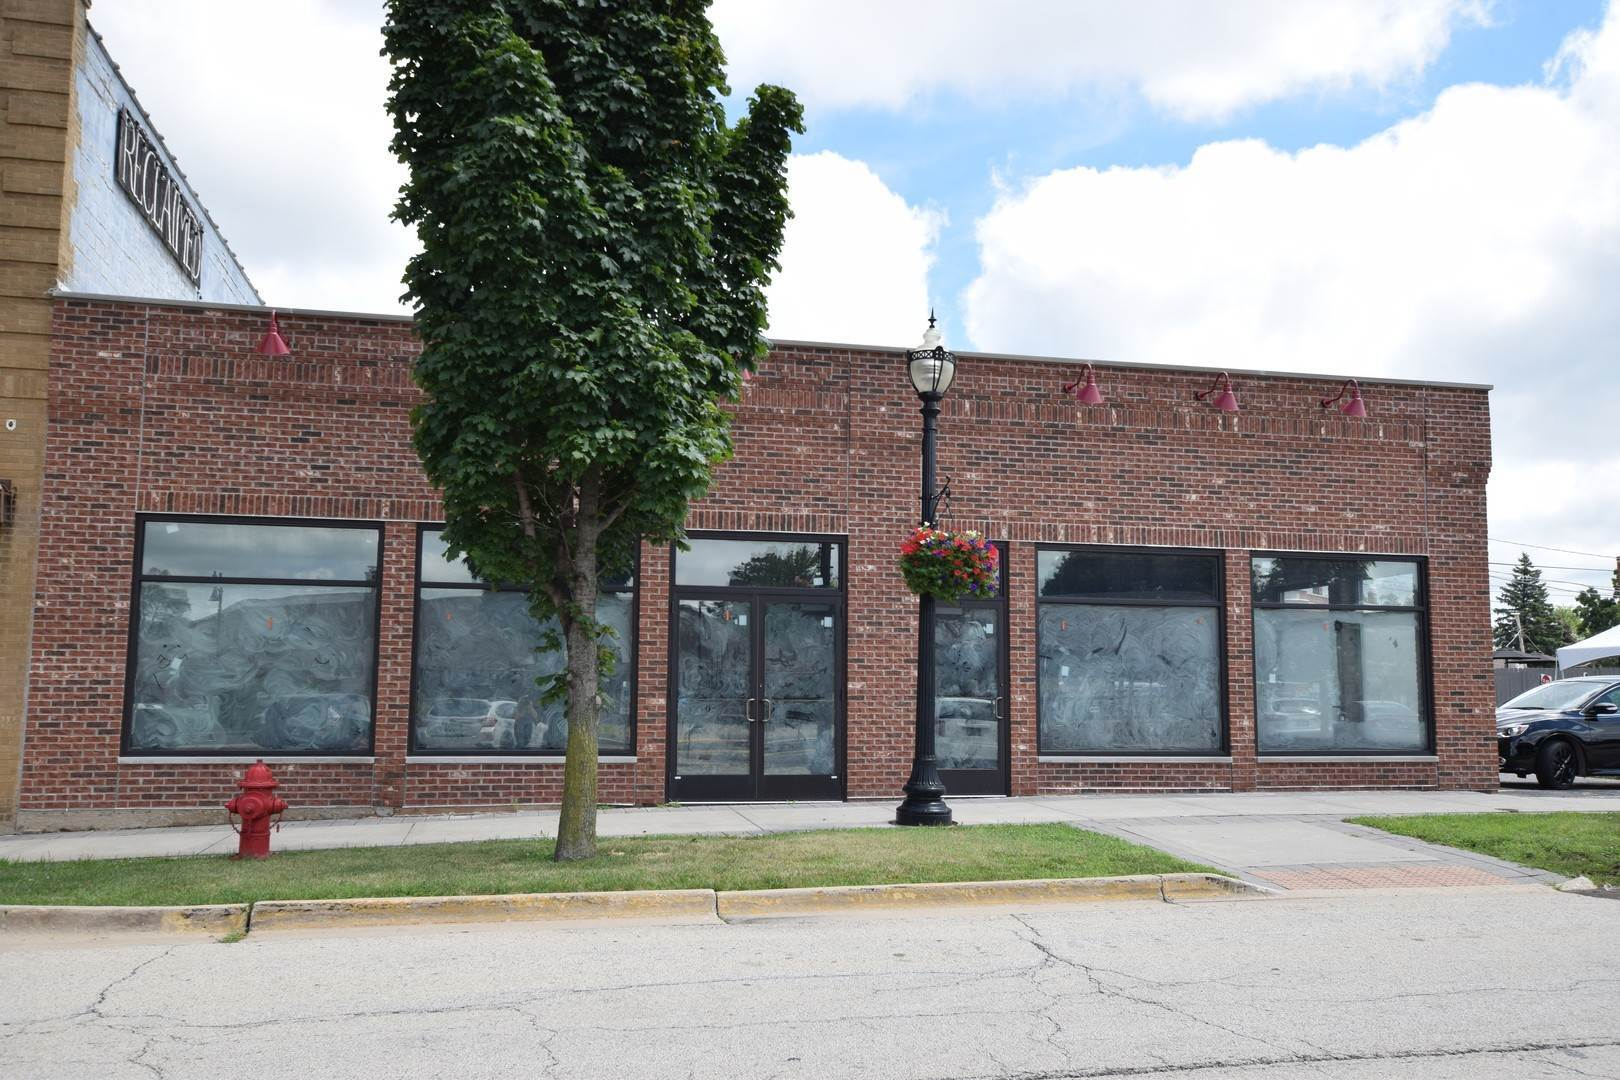 Commercial à 88 Railroad Street Crystal Lake, Illinois 60014 États-Unis